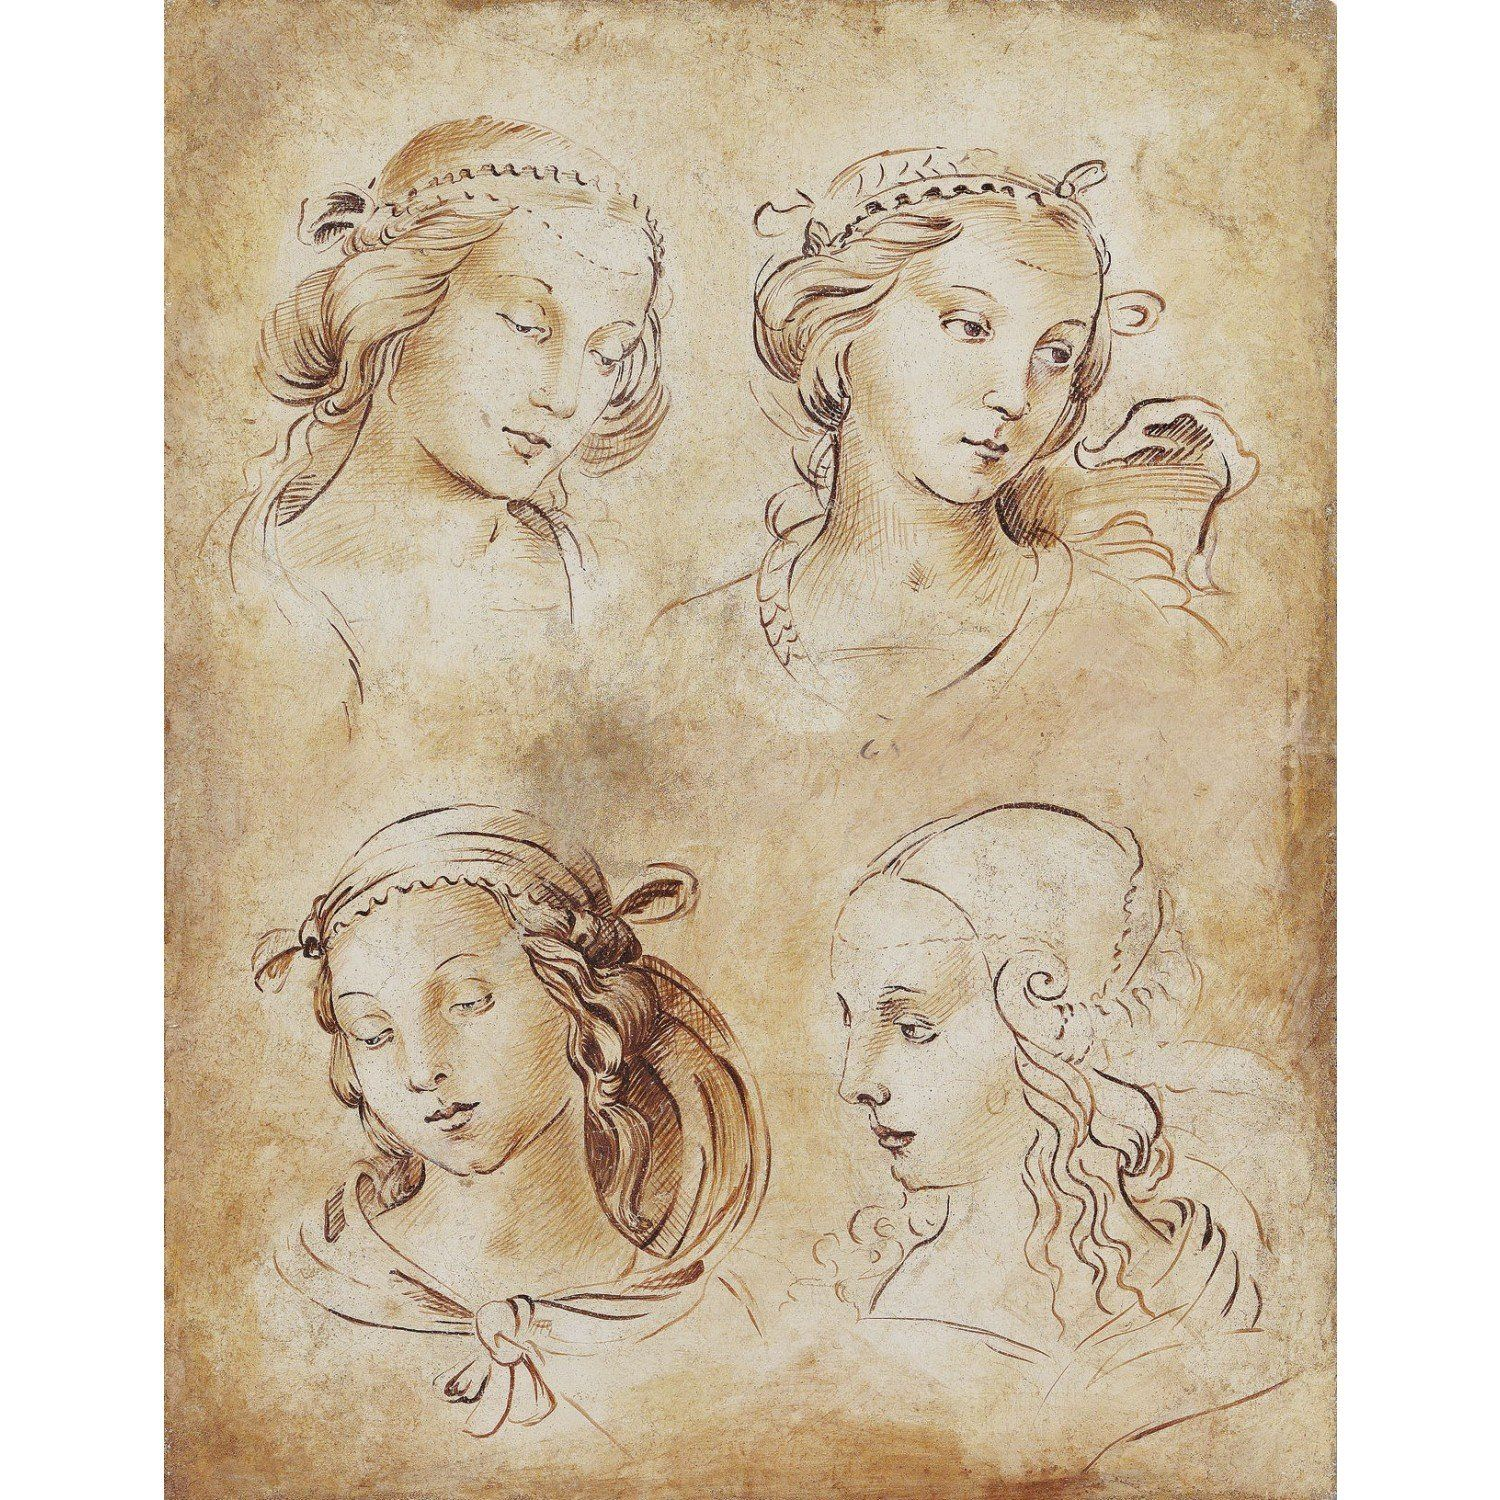 Art. 1729 - Esquisse de visages féminins